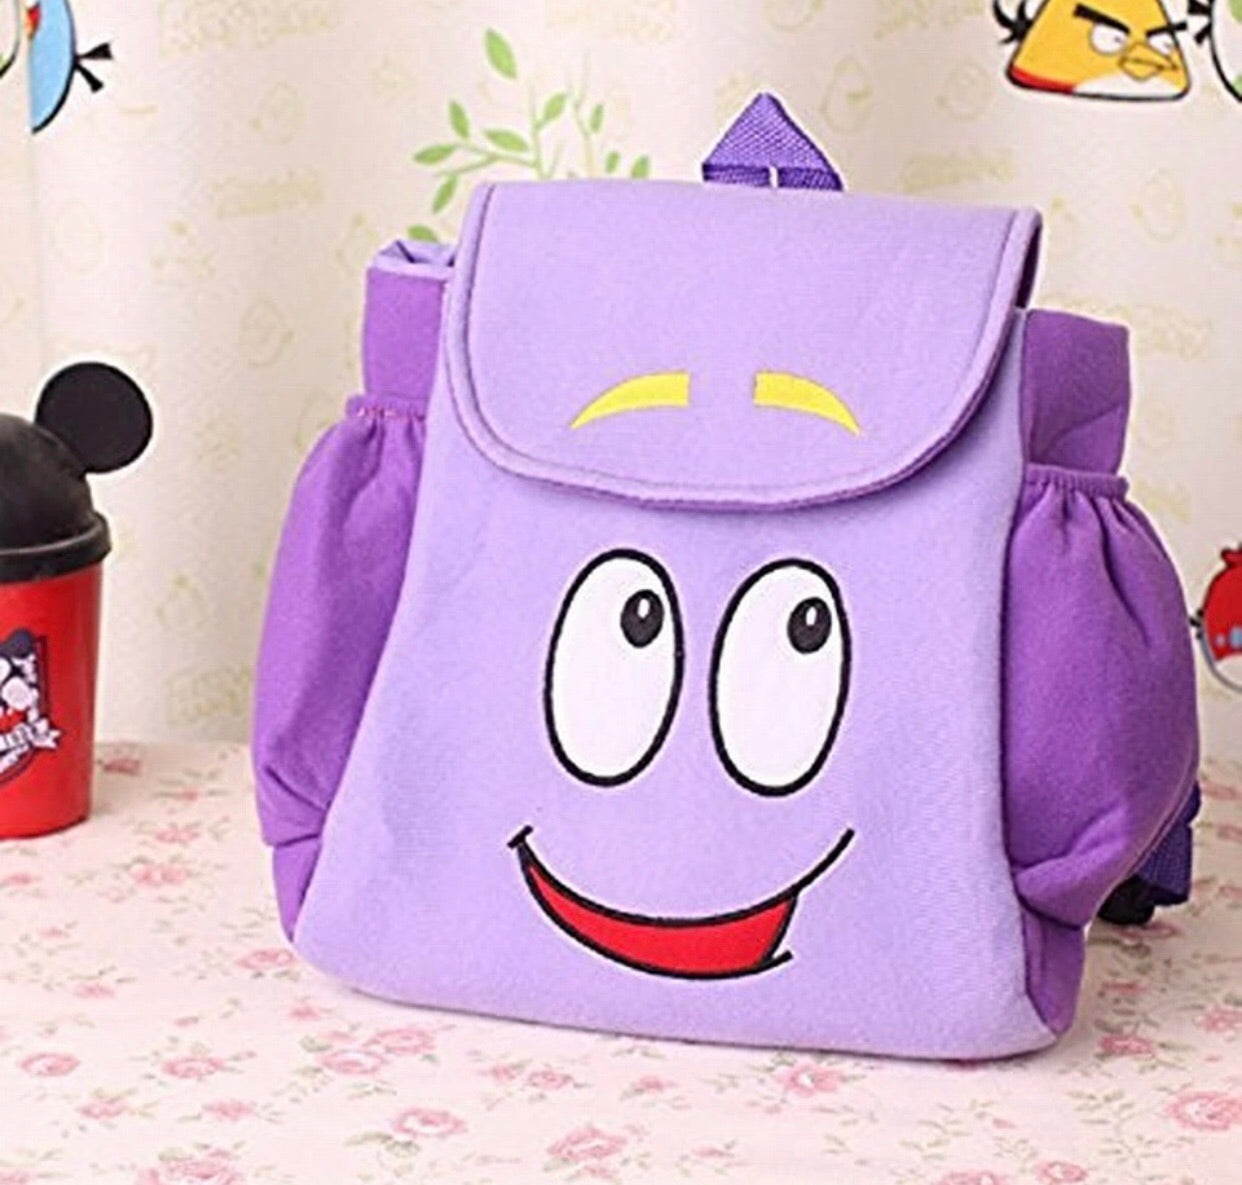 Dora's Backpack with map – O' So Chic on